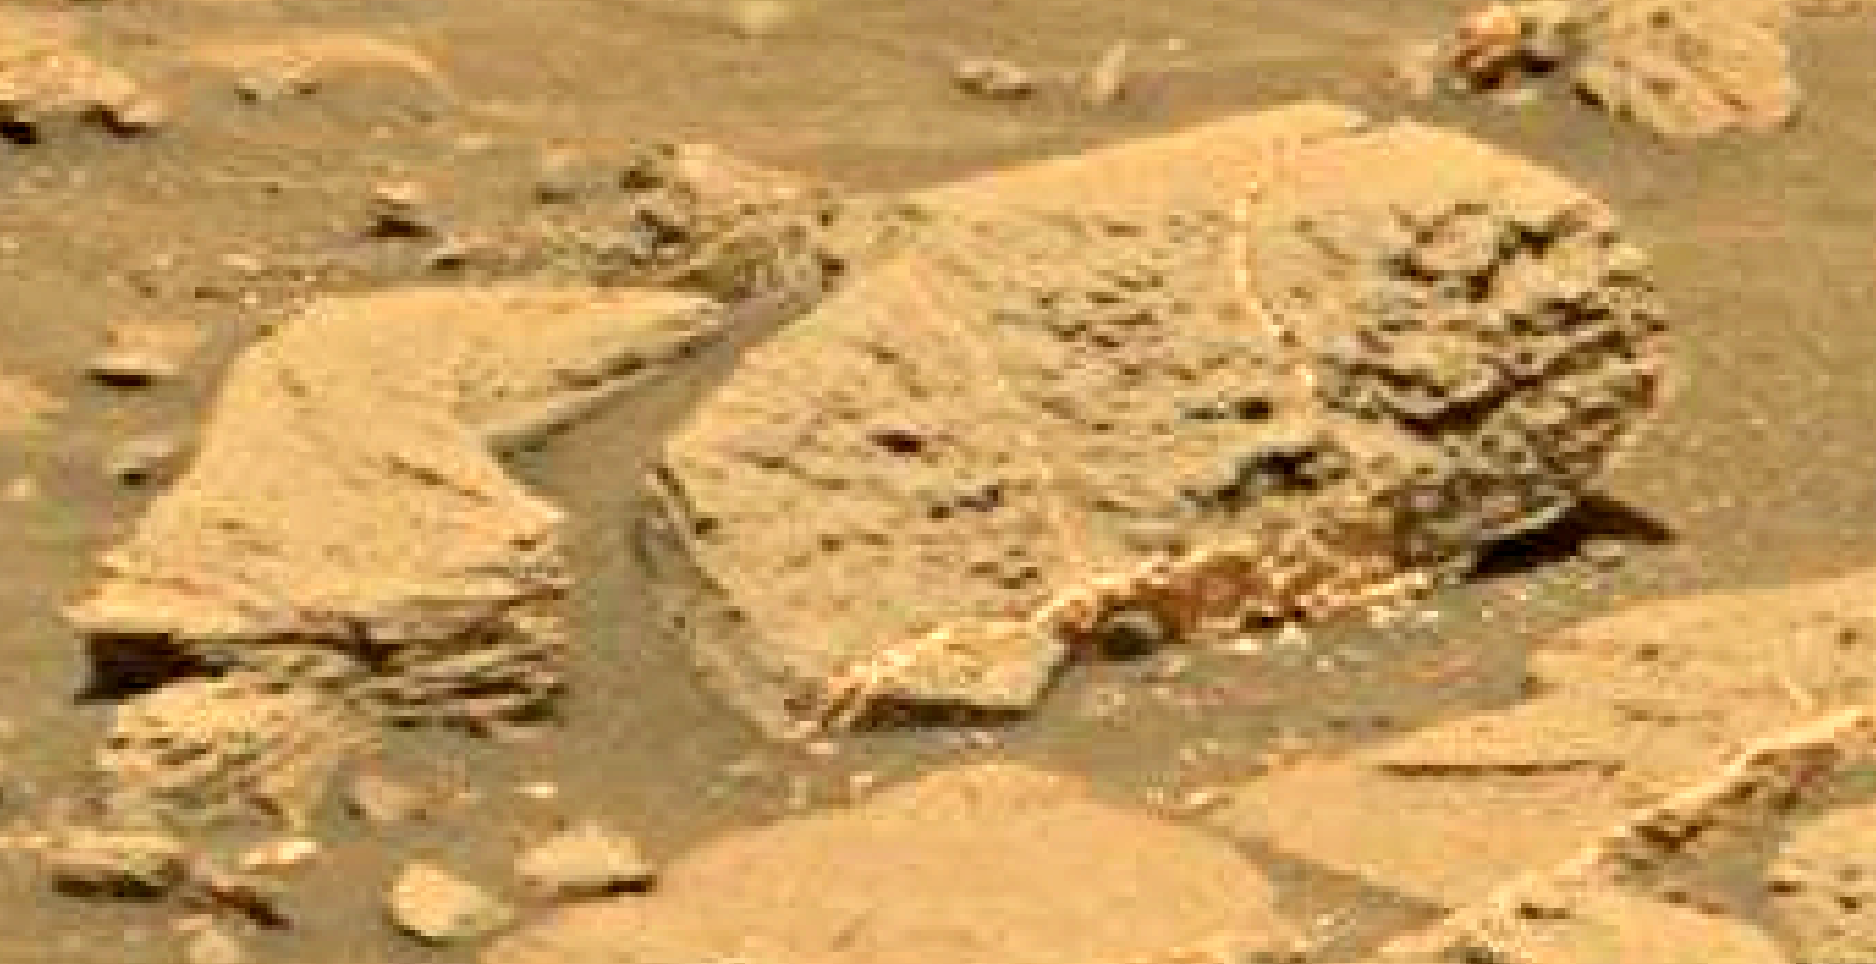 mars sol 1353 anomaly-artifacts 23 was life on mars